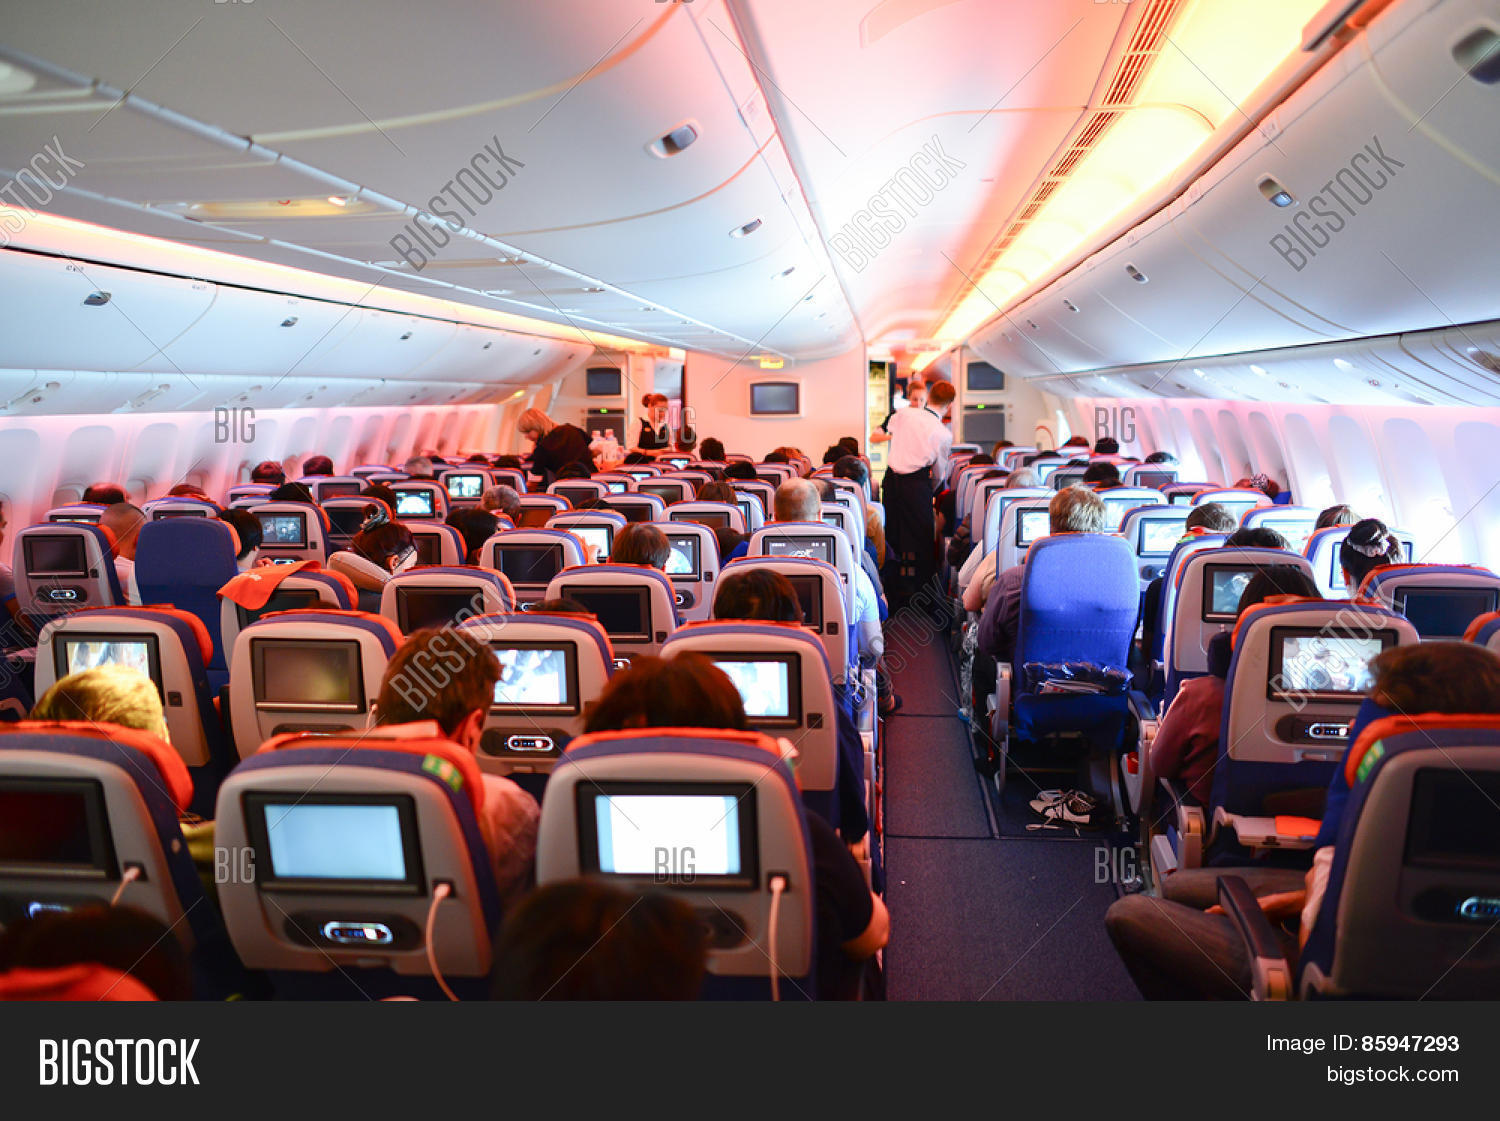 Moscow russia april 21 2014 image photo bigstock for Interieur boeing 777